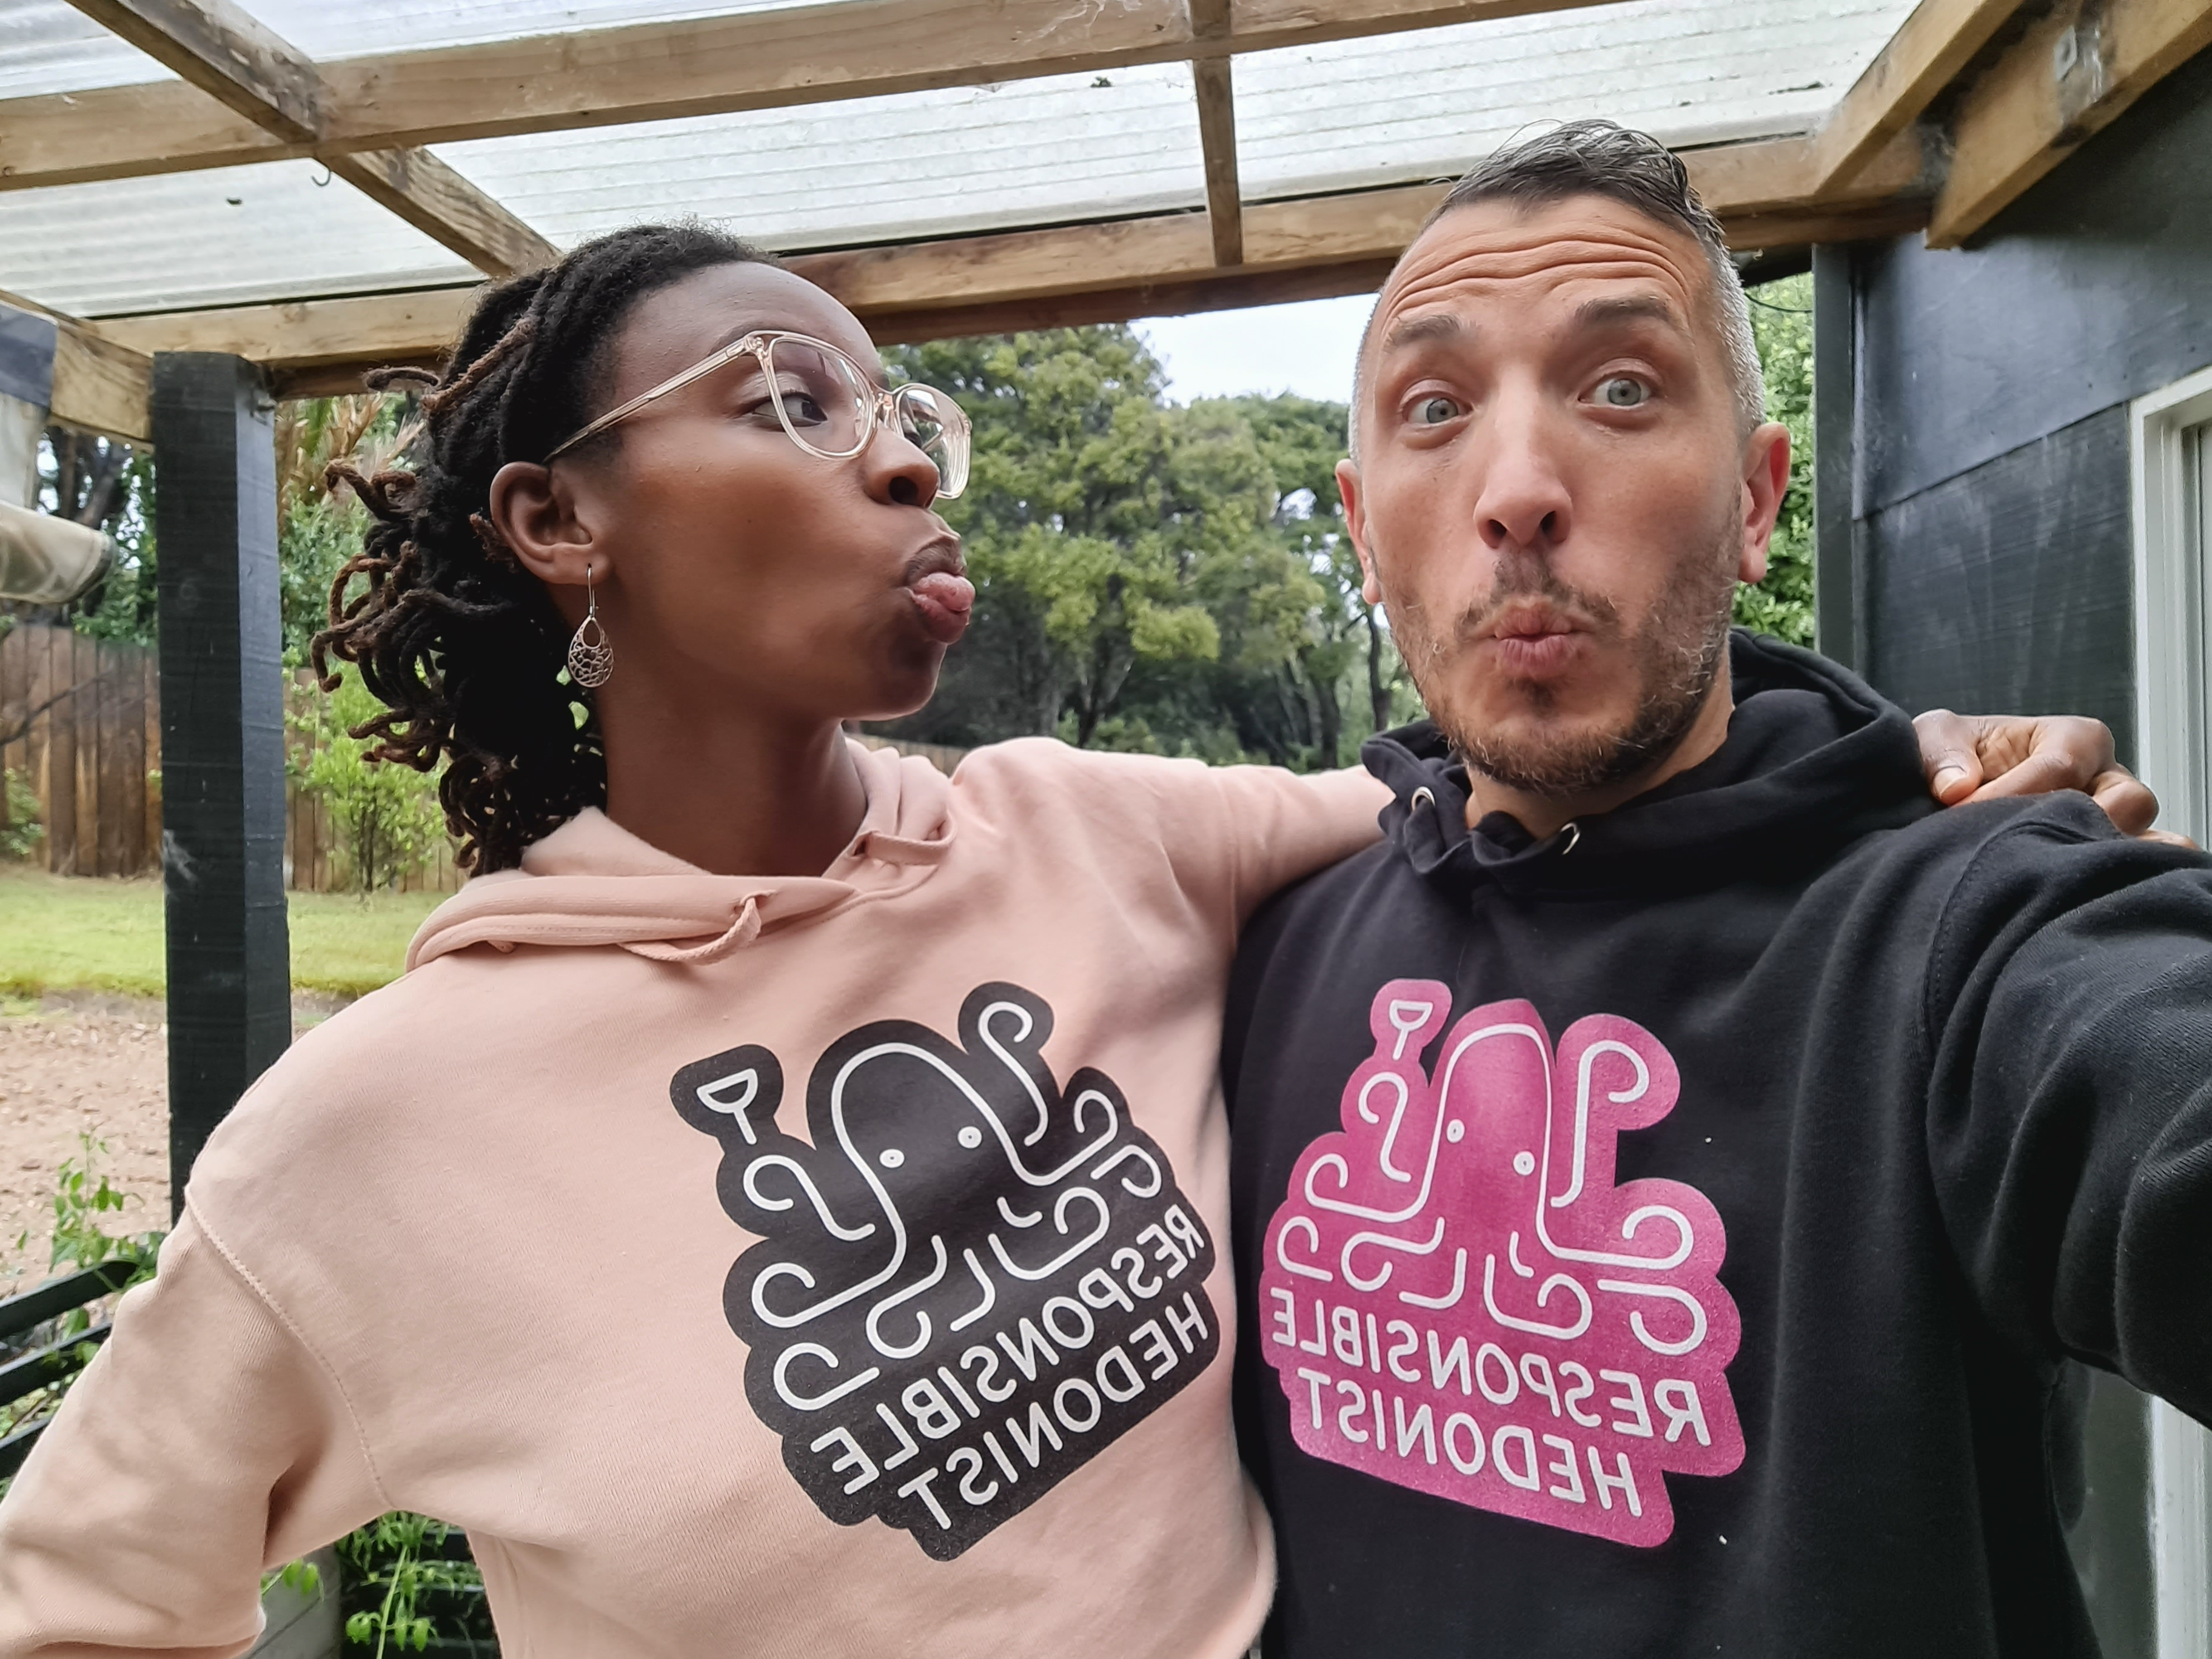 Diana and Frank in Responsible Hedonist hoodies with their tongues out playfully